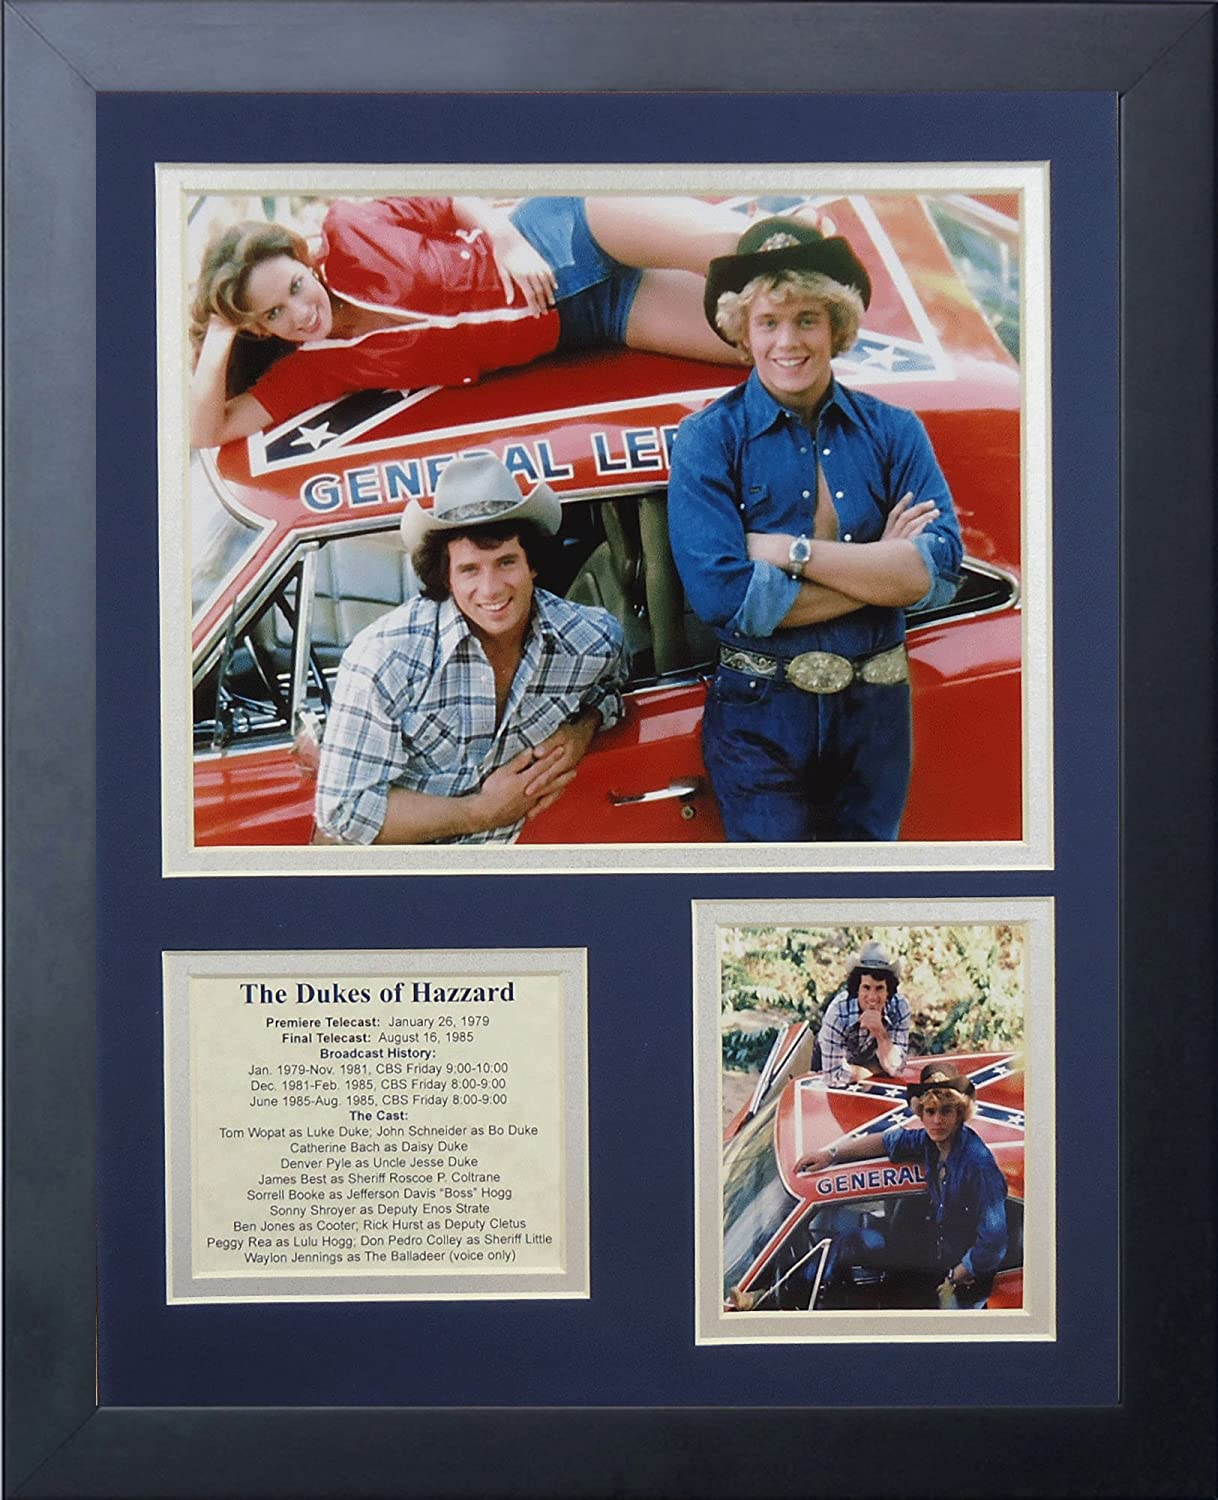 "Dukes of Hazzard 11"" x 14"" Framed Photo Collage by Legends Never Die, Inc. - General Lee"